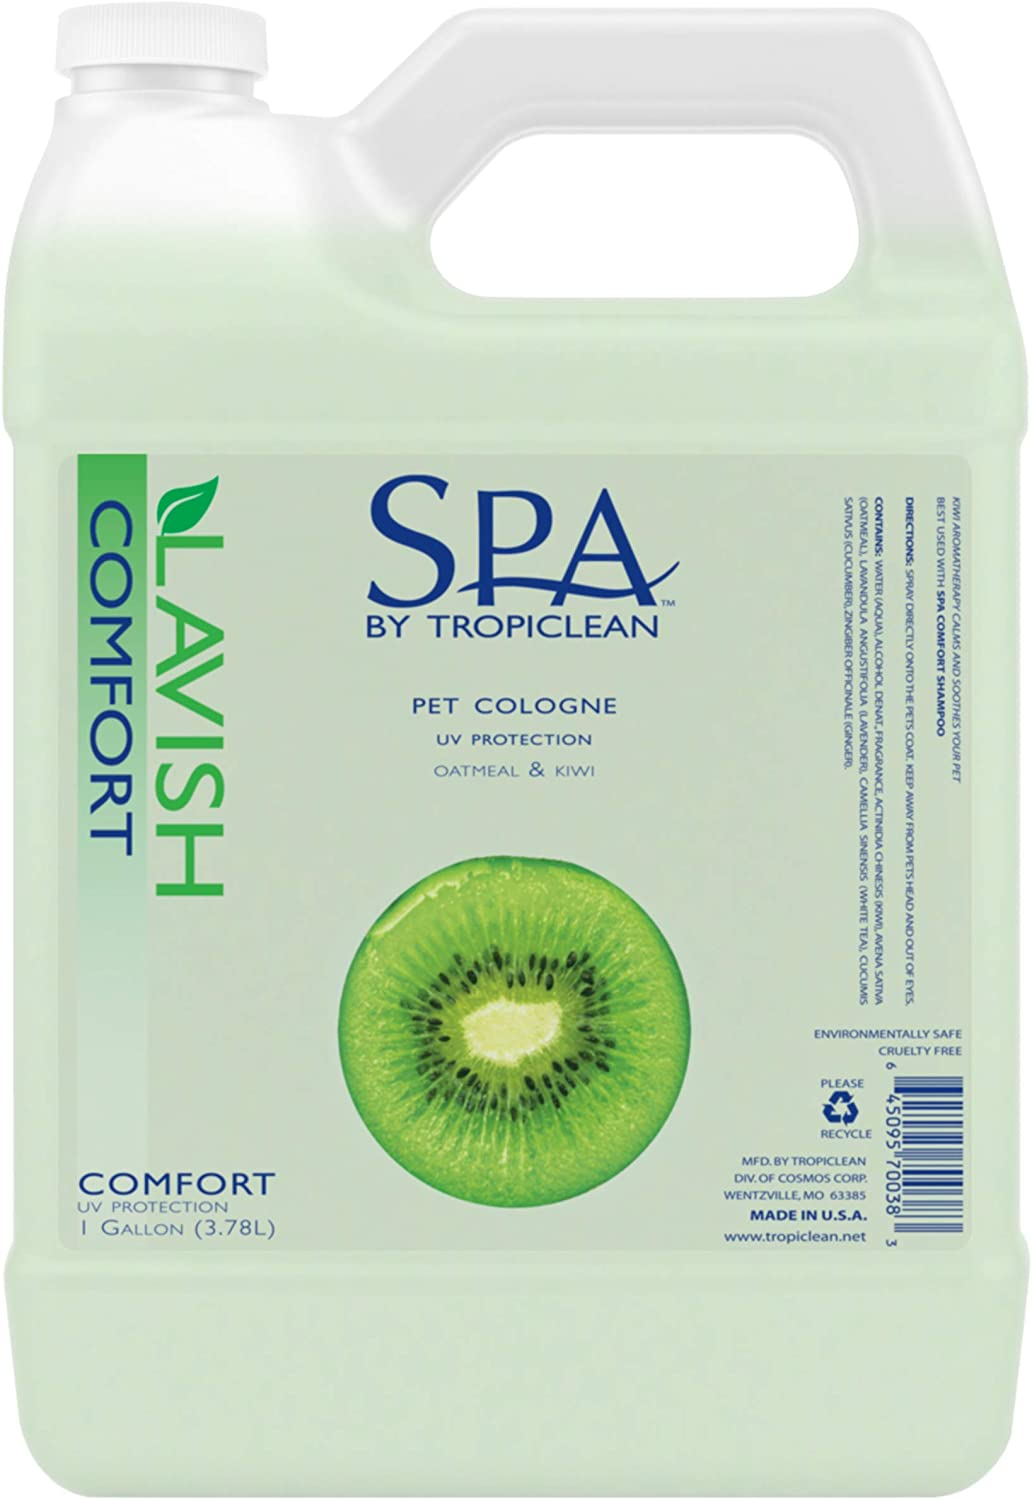 SPA by TropiClean Lavish Comfort Cologne Spray for Pets, 1 gal - Fresh Kiwi Scent - Ready to Use - Made in USA - Deodorizing -Conditioning - UV Protection